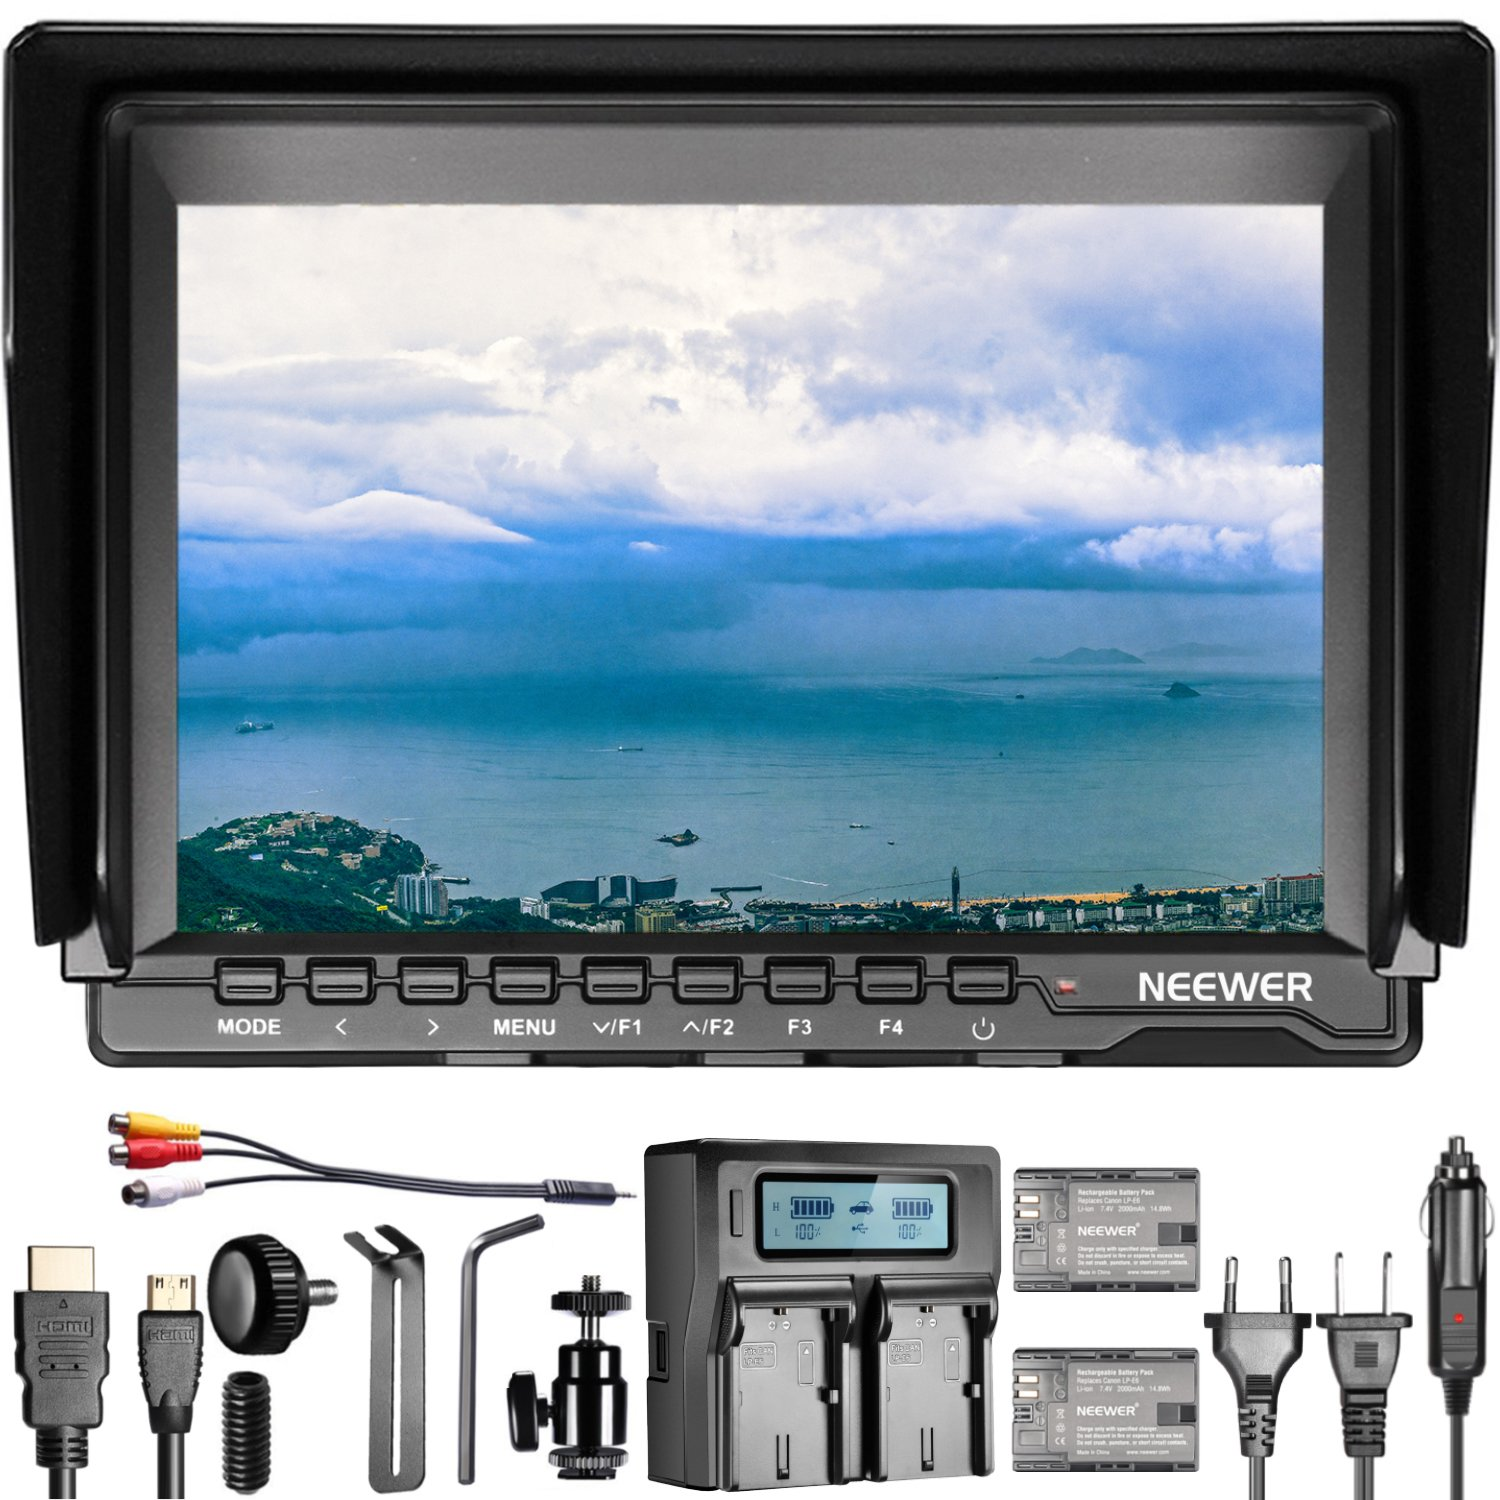 Neewer NW759(C) 7 inches Camera Field Monitor Kit: 1280x800 IPS Screen Monitor 16:10 or 4:3 Adjustable Display Ratio with Storage Carrying Case for Nikon Sony Canon Olympus Pentax Panasonic Cameras 90090688